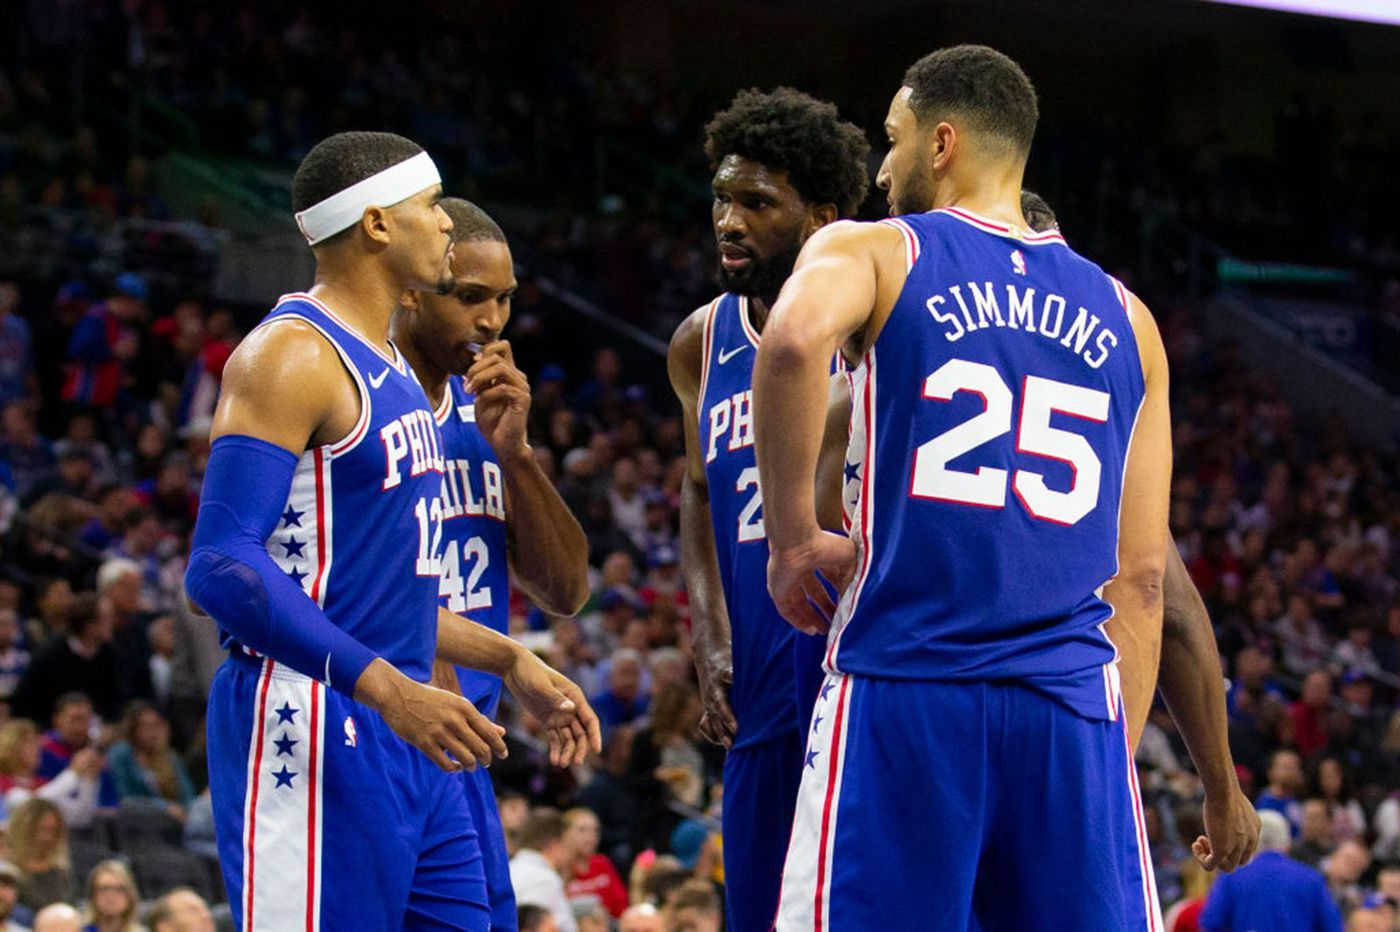 Doc Rivers embraces the Sixers' size: 'You have to be the best version of you and not apologize for that'